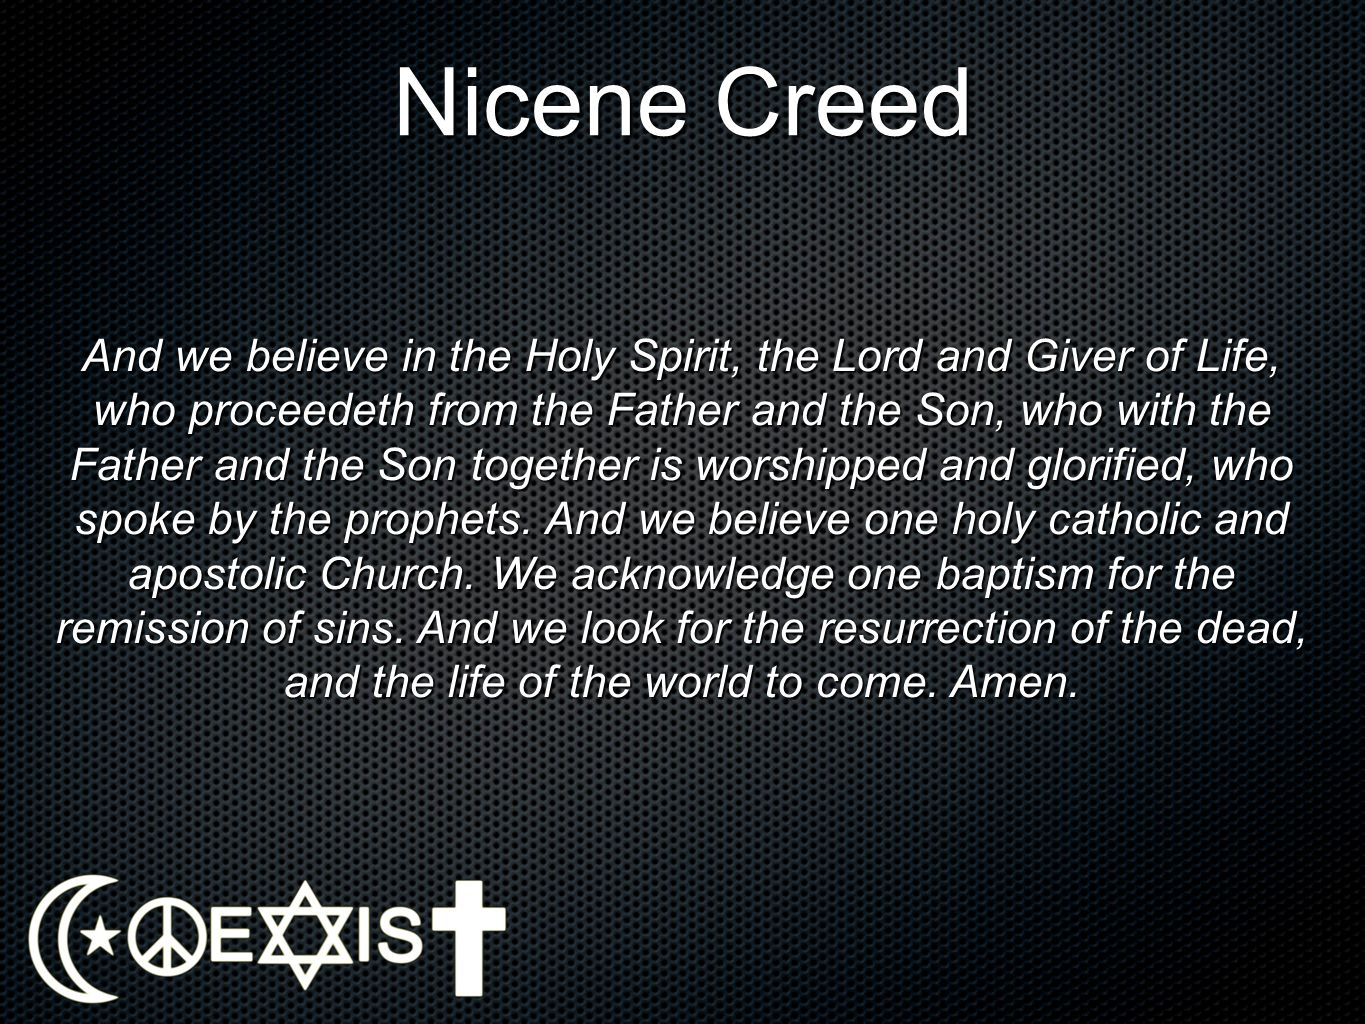 Nicene Creed And we believe in the Holy Spirit, the Lord and Giver of Life, who proceedeth from the Father and the Son, who with the Father and the So